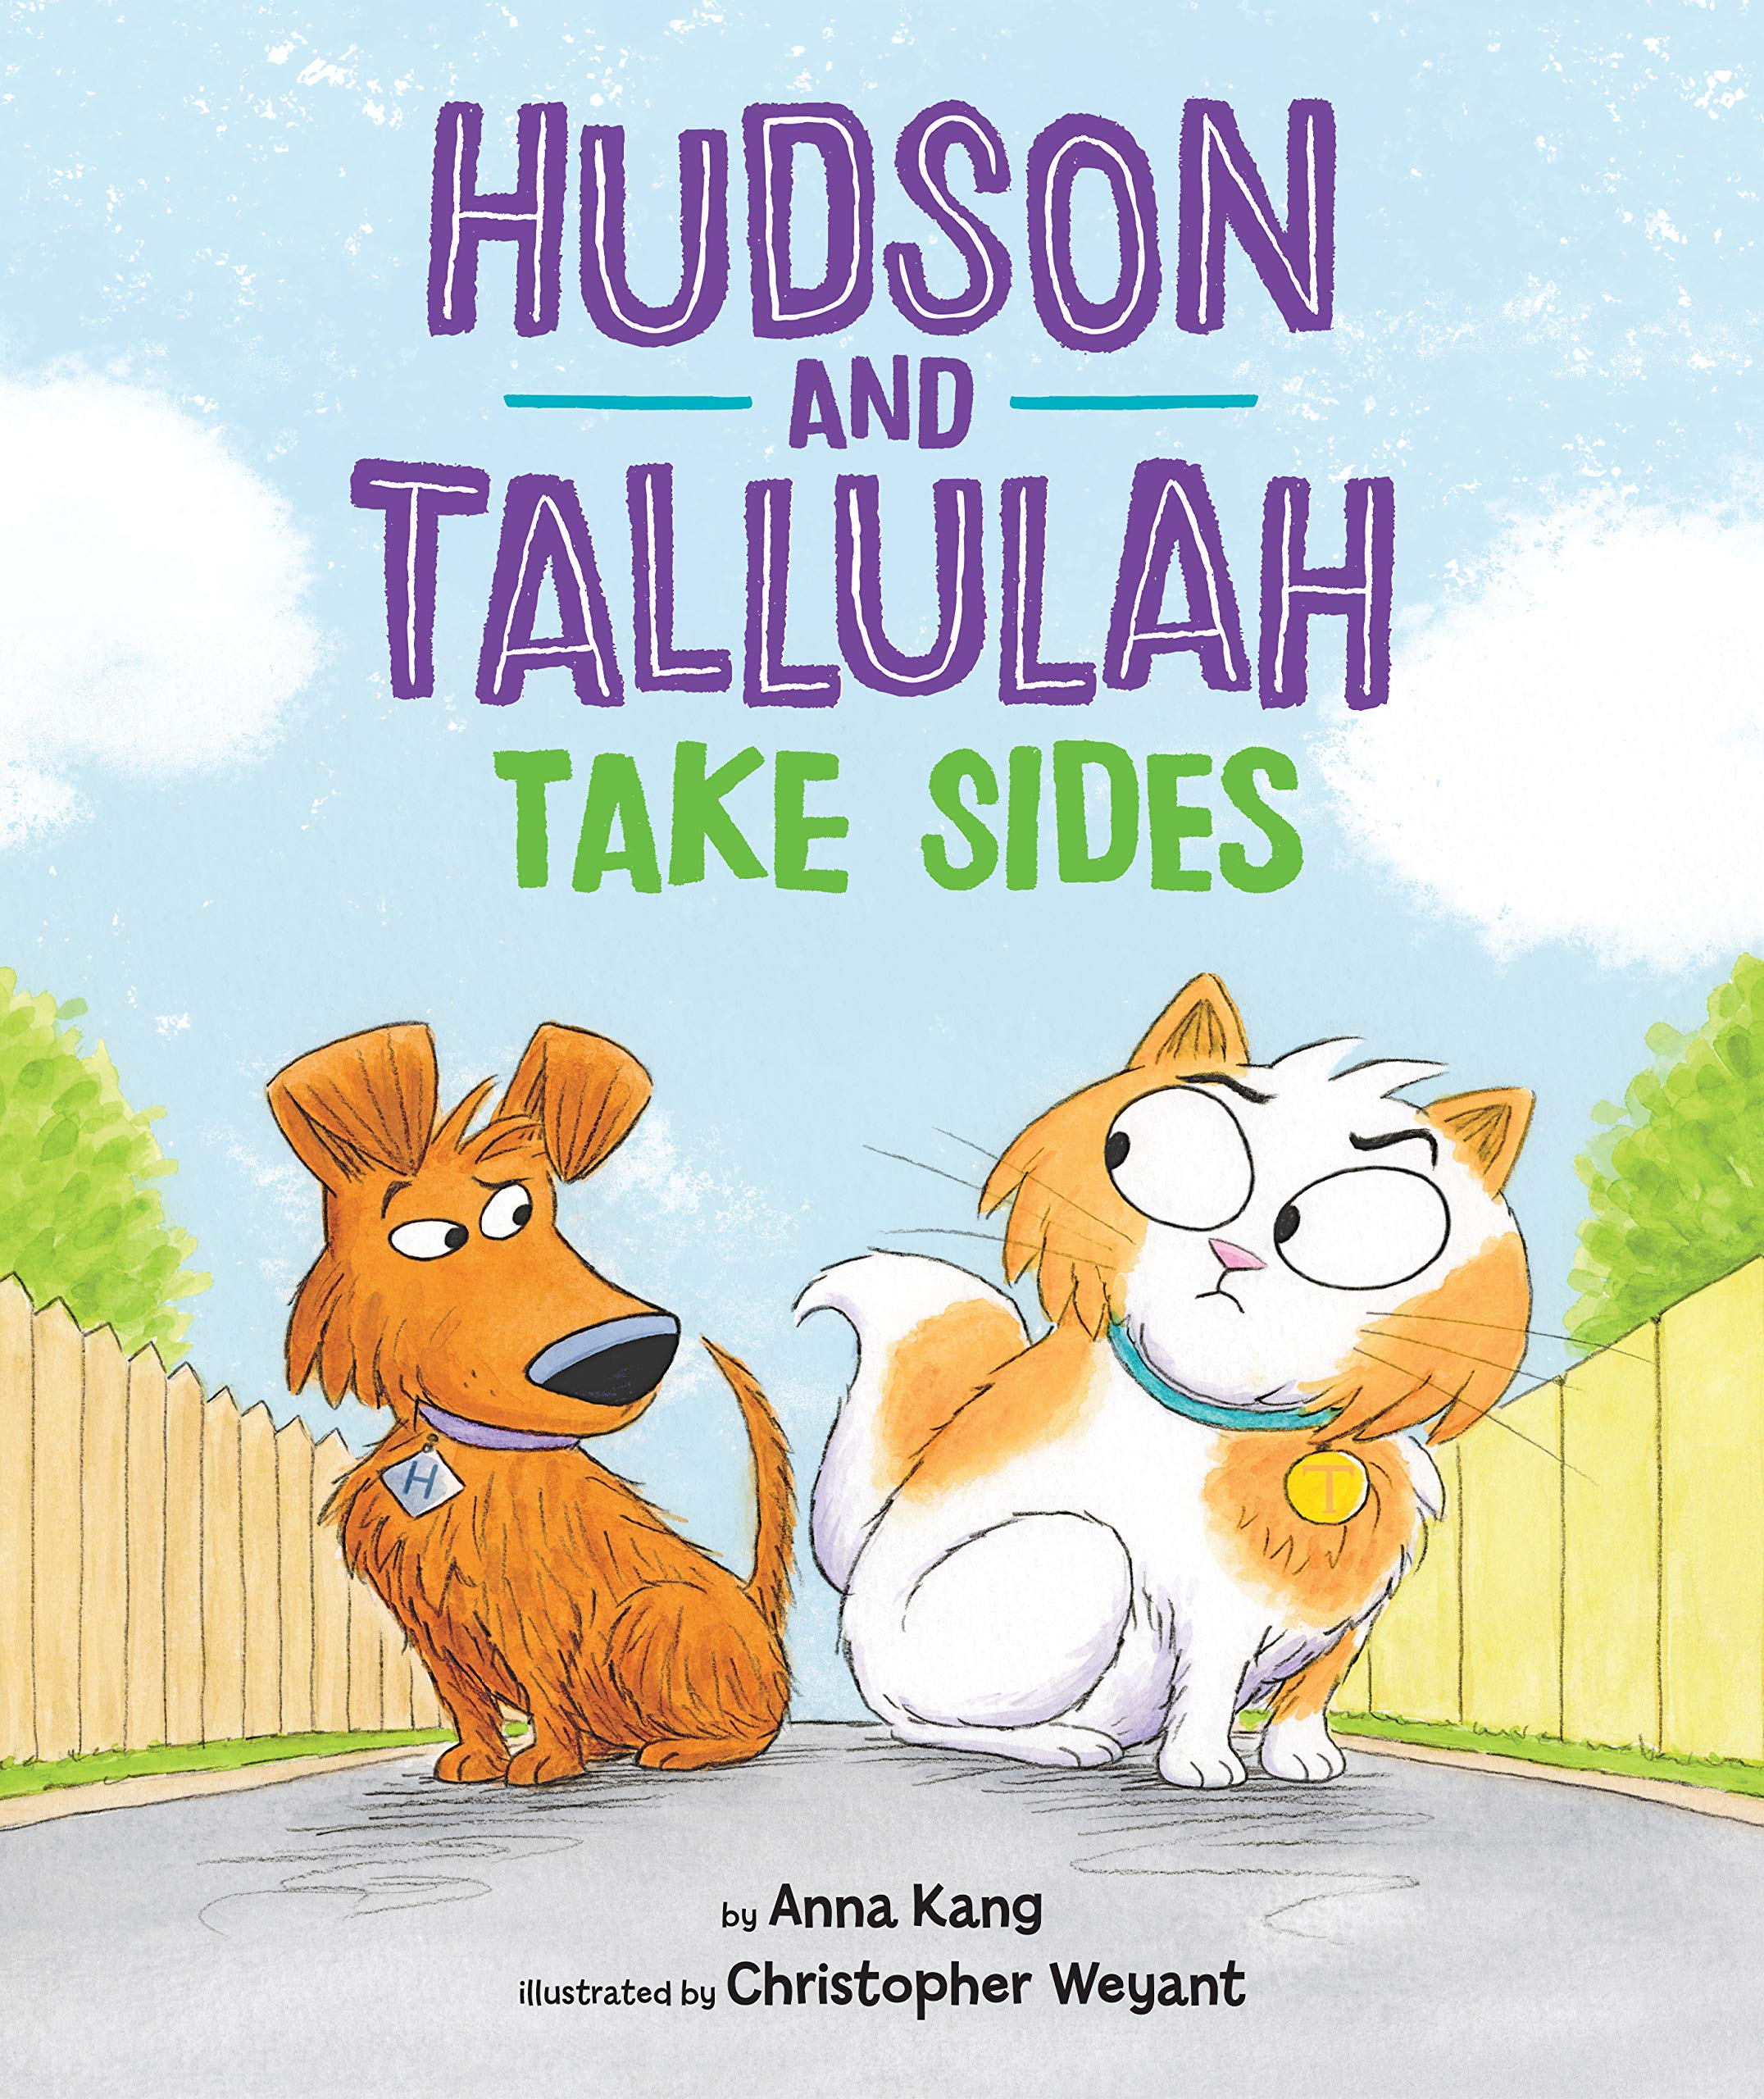 celebrate-picture-books-picture-book-review-hudson-and-tallulah-take-sides-cover